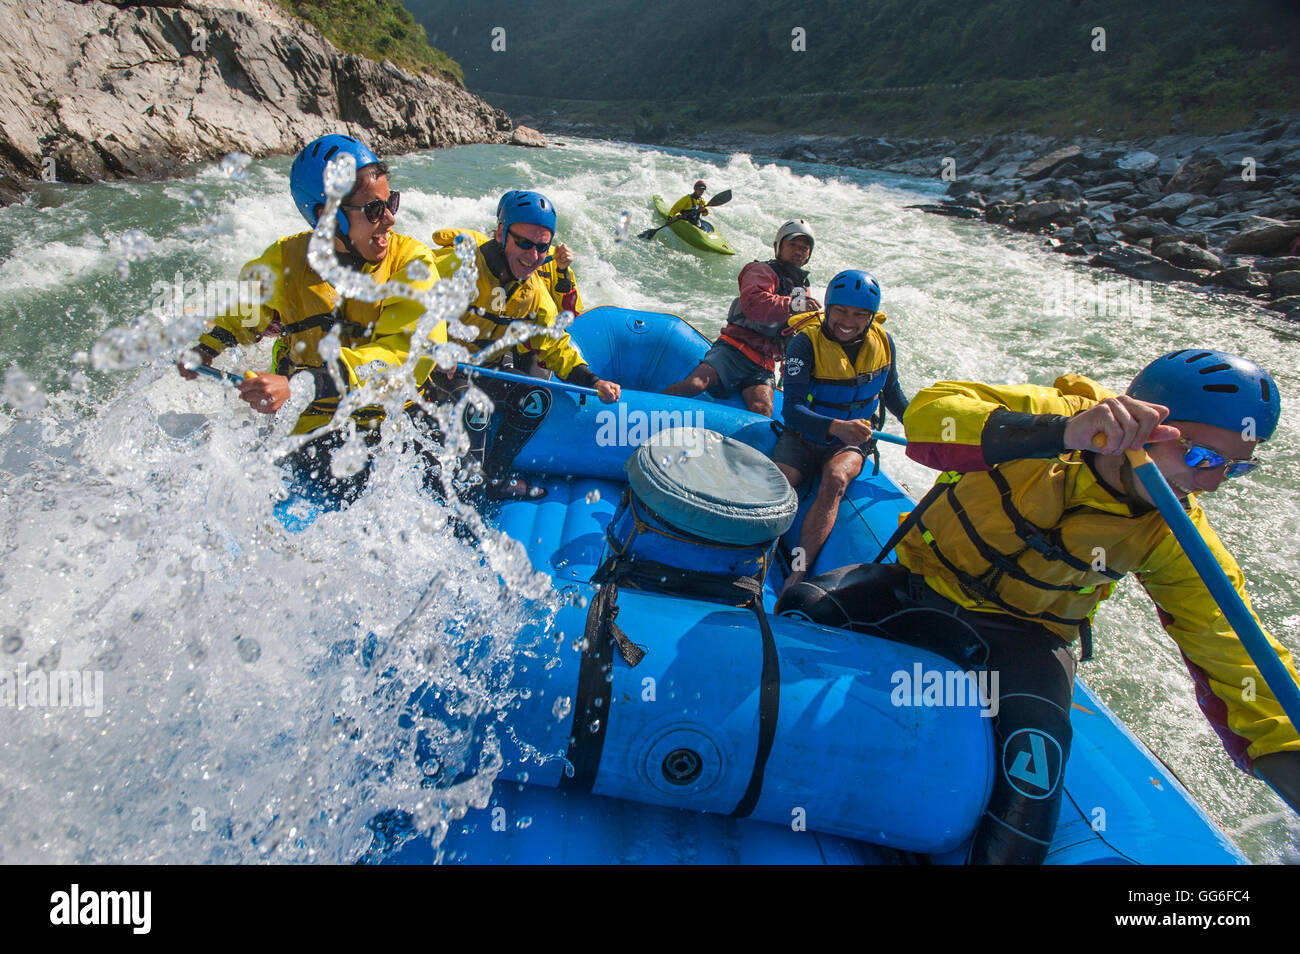 Rafting trip on the Trisuli River in Nepal, Asia - Stock Image